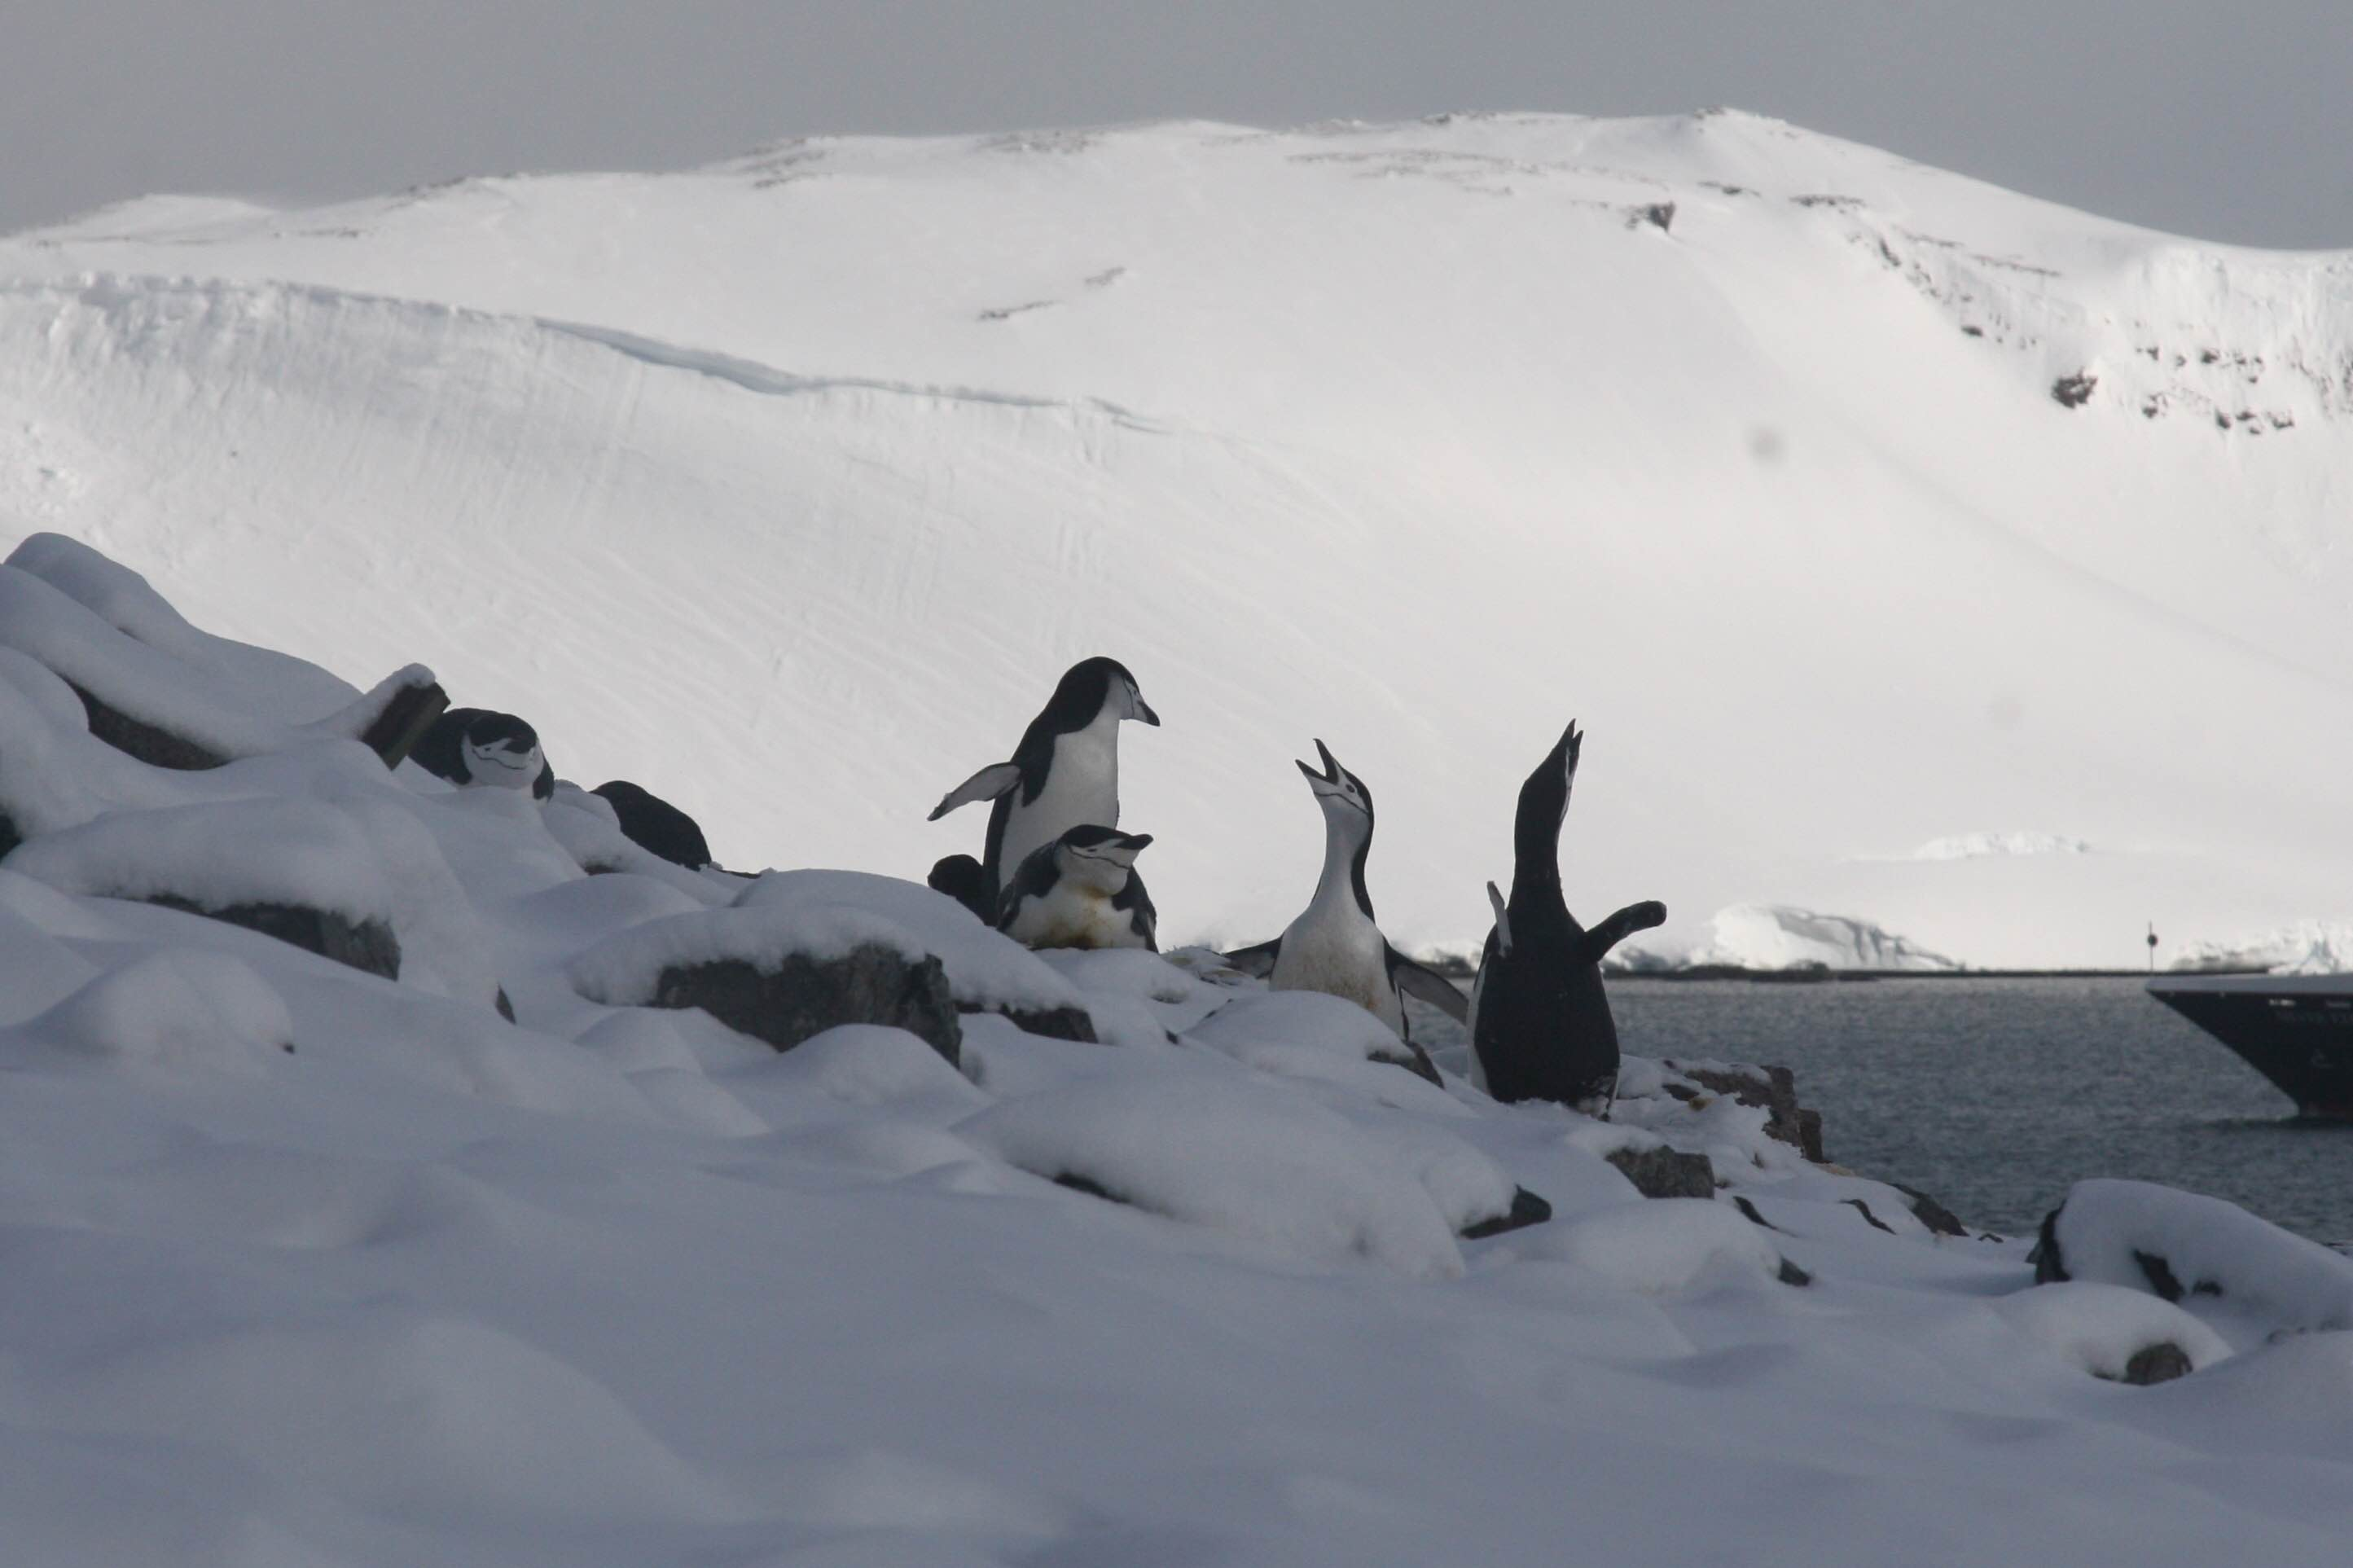 Chinstrap Penguins arguing over whose turn it is to watch their egg, Half Moon Island, Antarctica (Photo credit: Brian Druker)